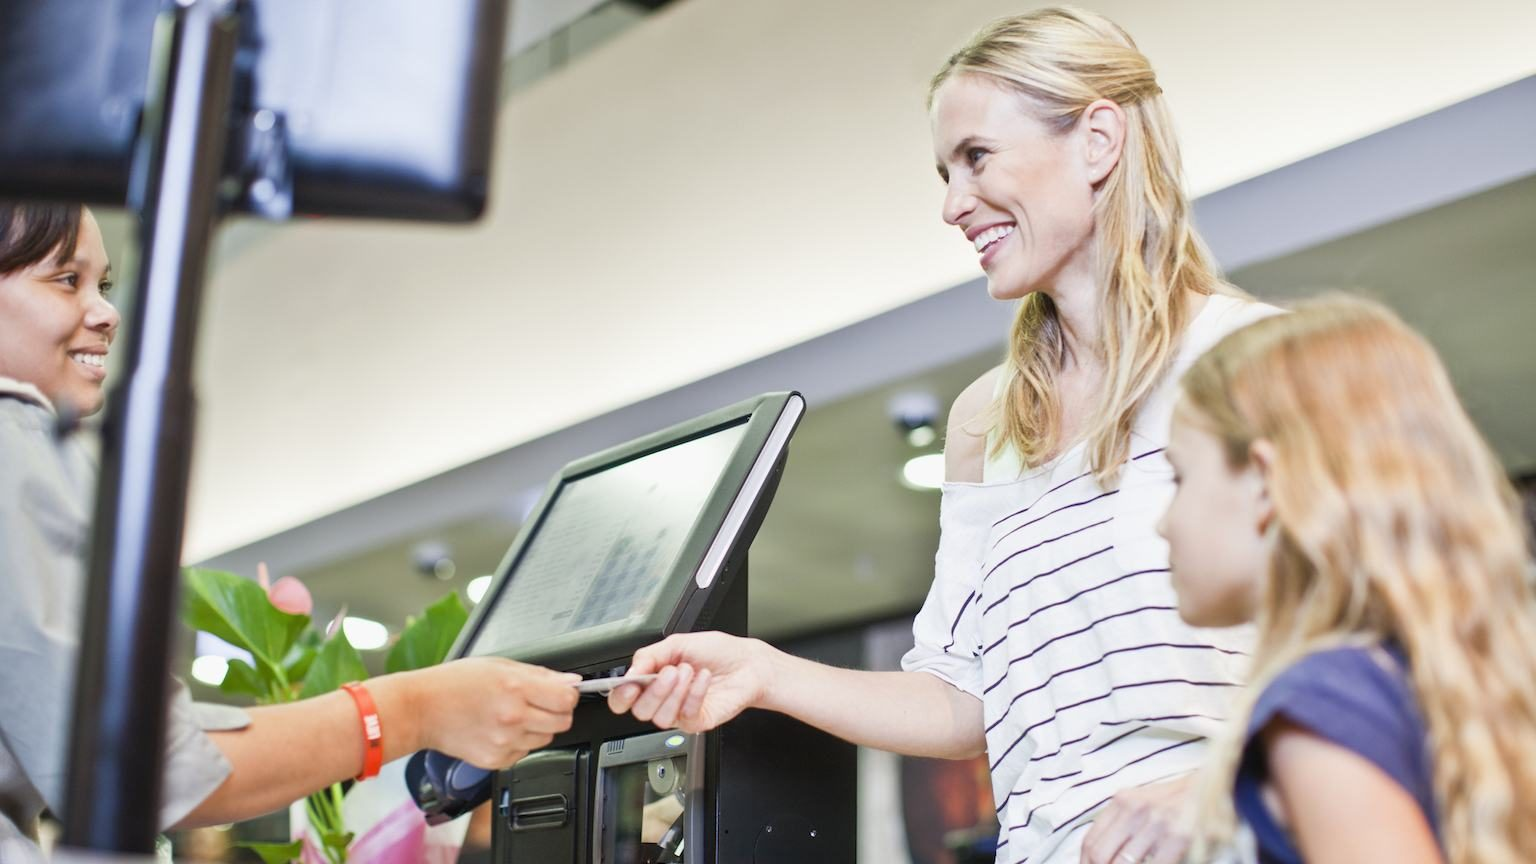 Mother and daughter paying for groceries with credit card.